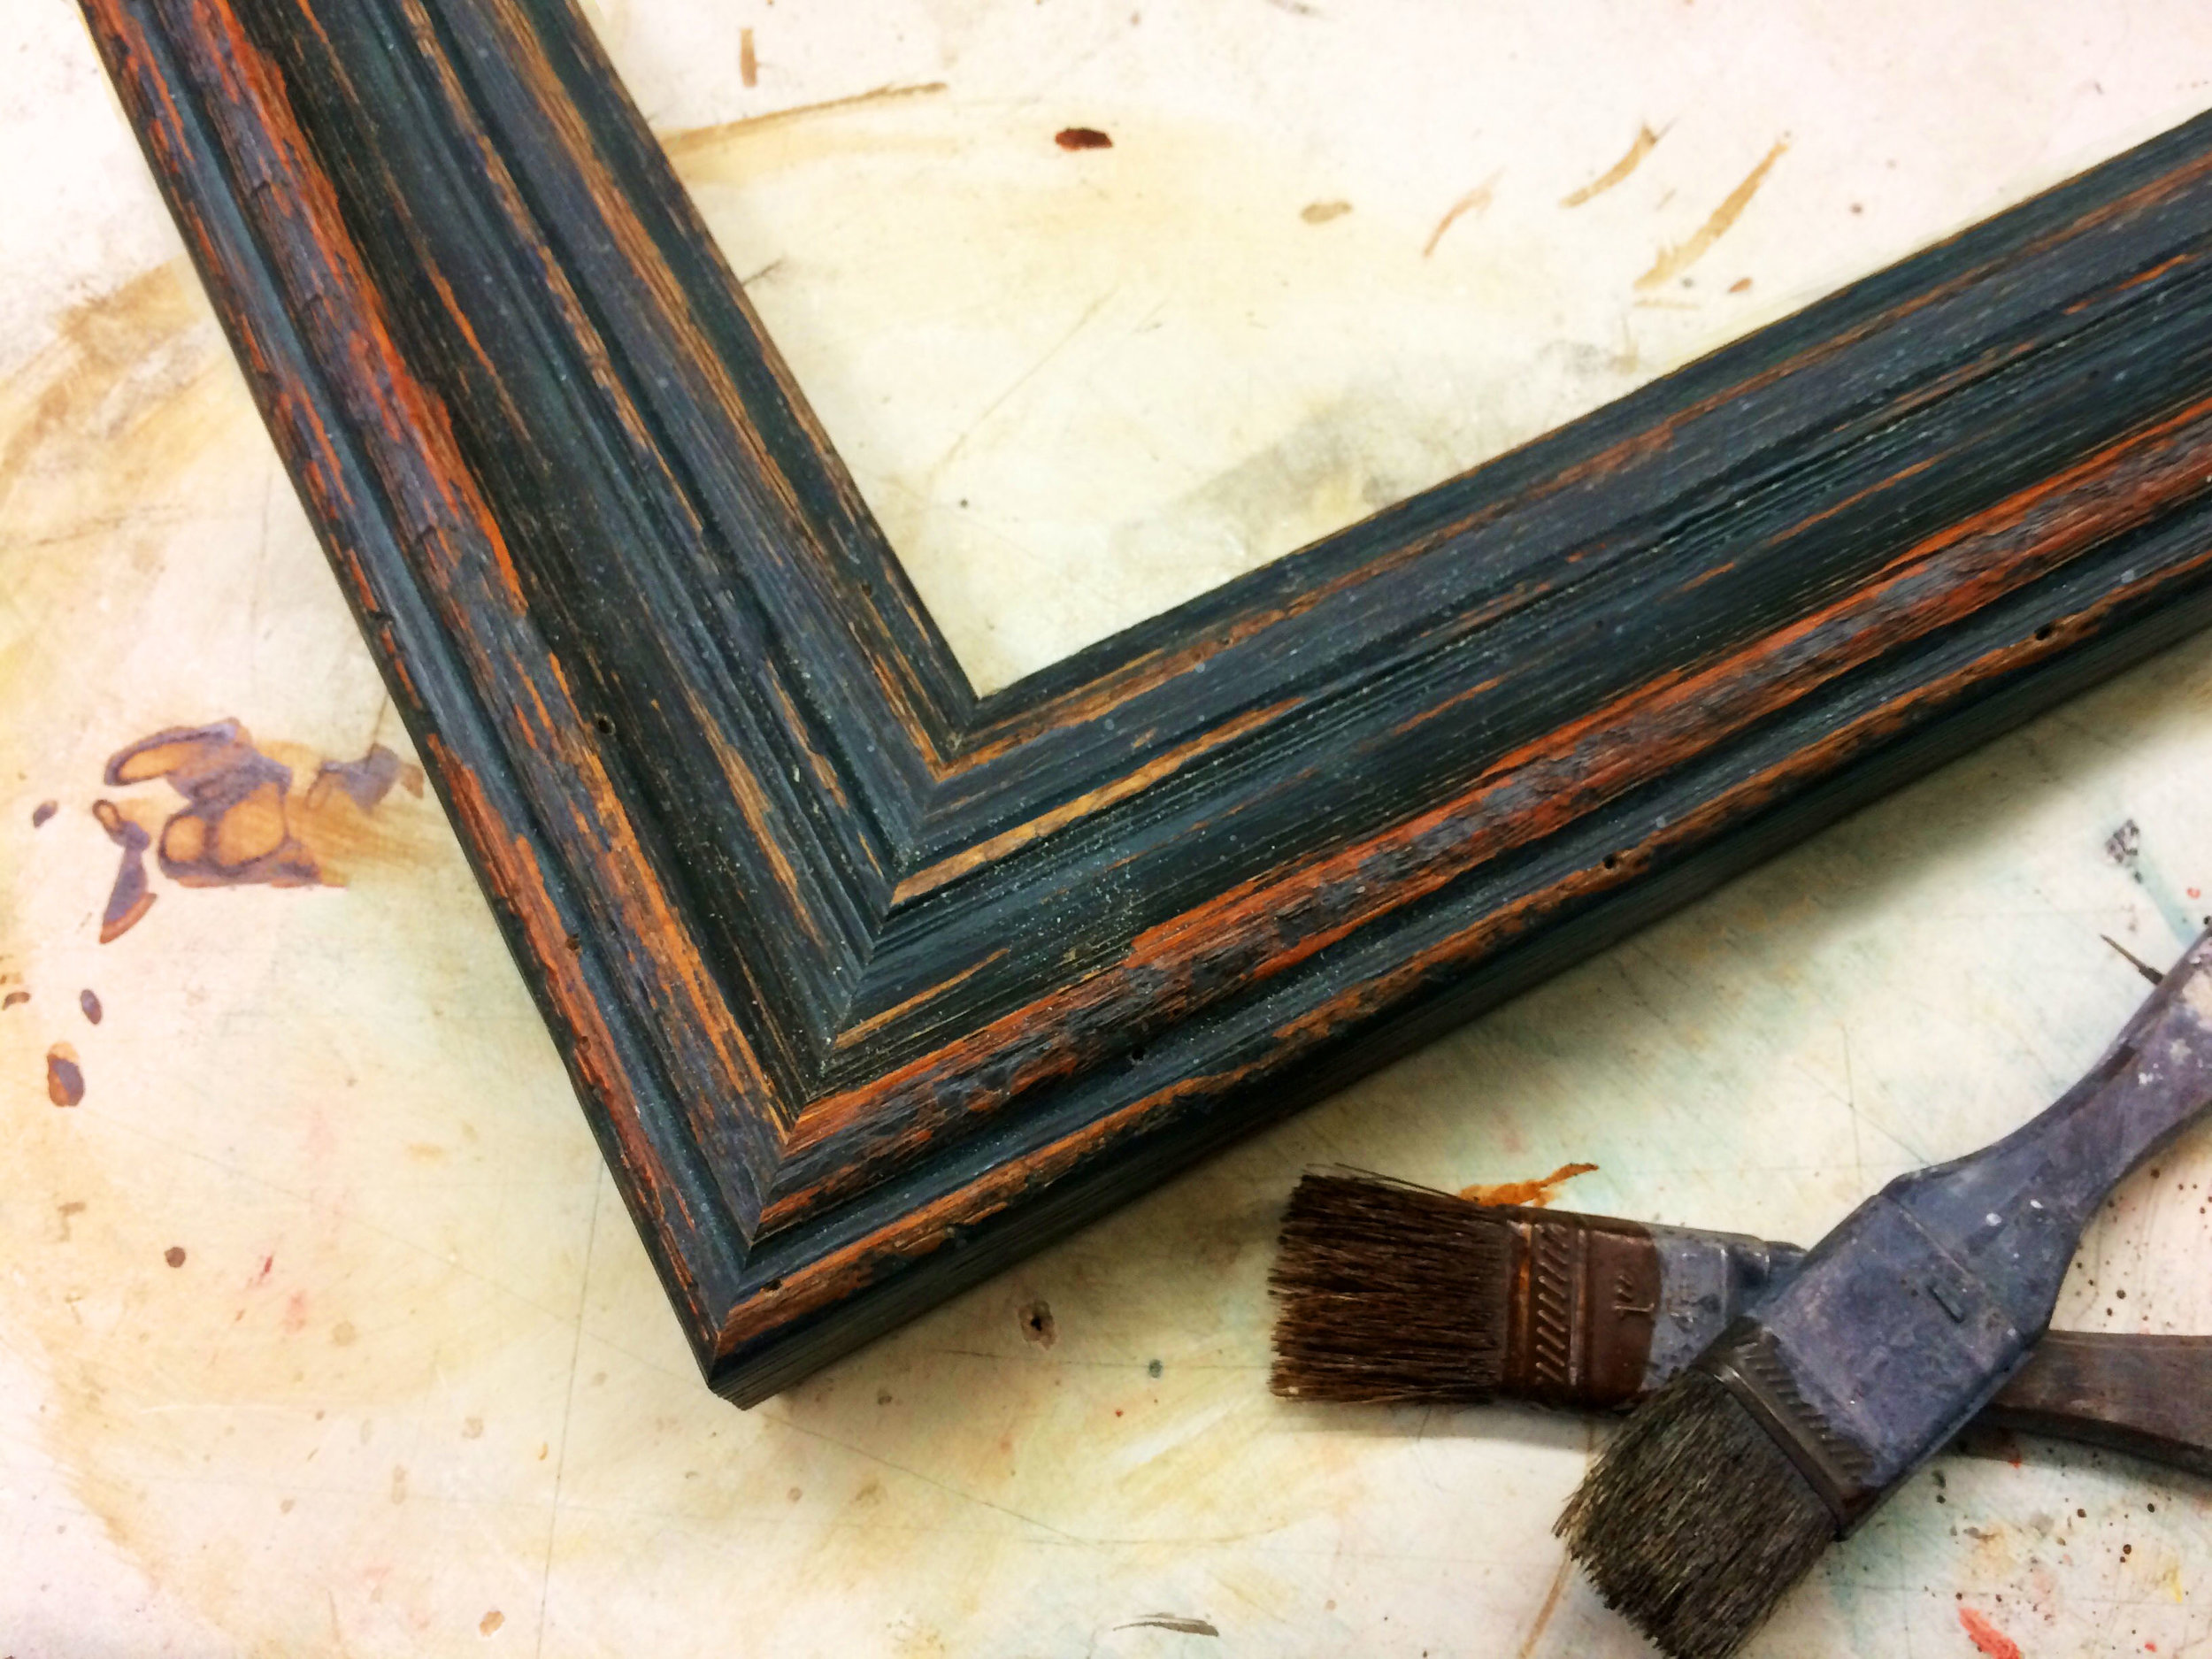 custom-picture-framing-museum-frames-rustic-restoration-costa-mesa-irvine-newport-beach-laguna-corona-del-mar-aliso-viejo-tustin-los-angeles-la-orange-county-oc.jpg